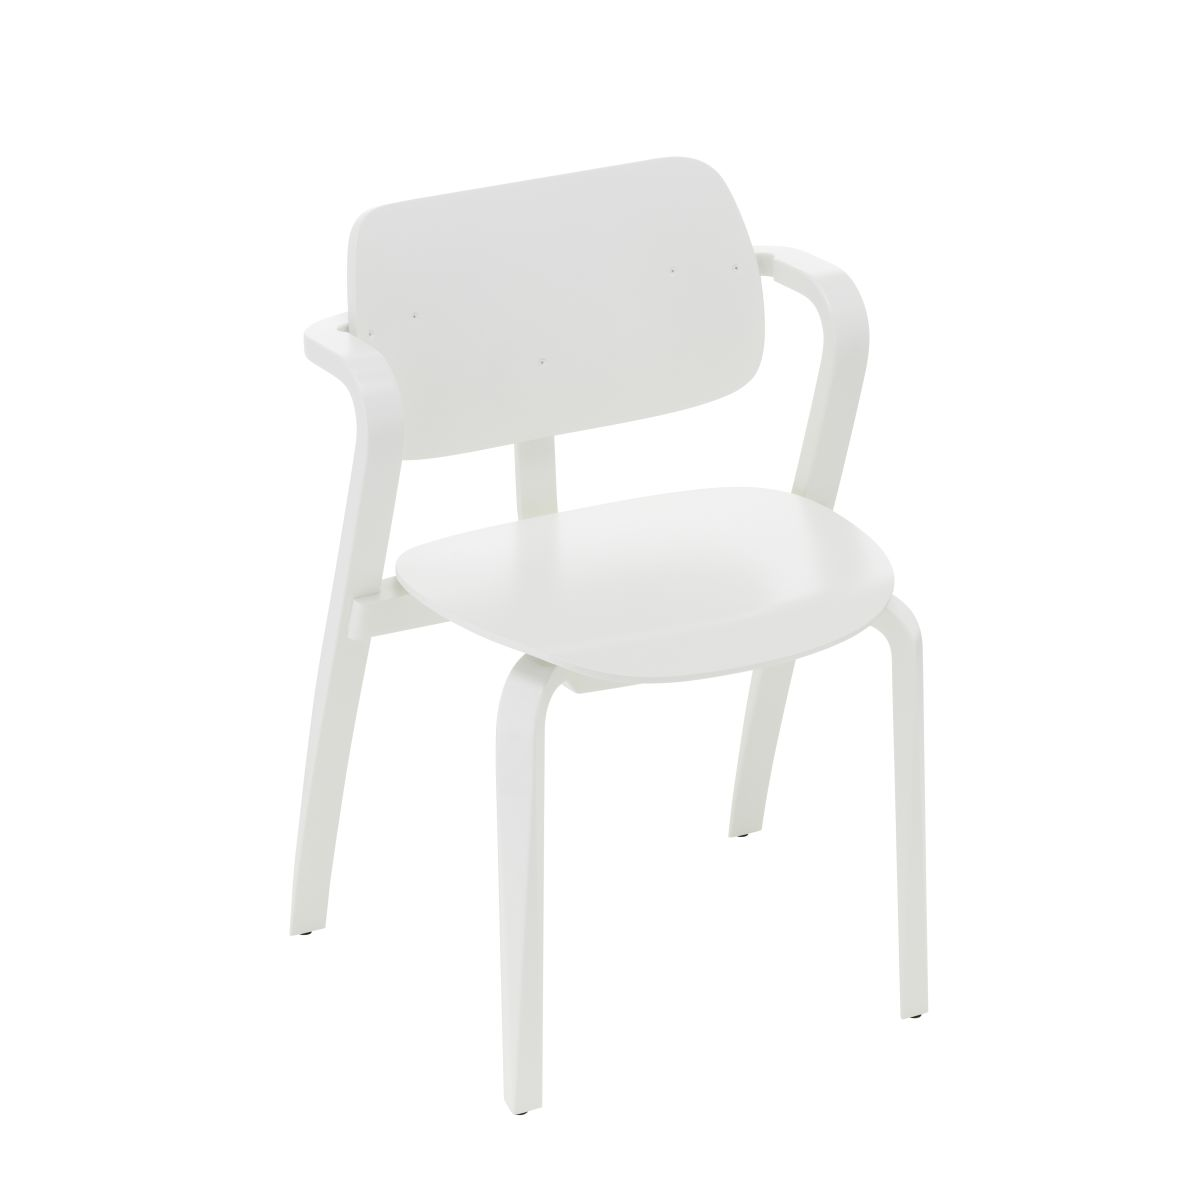 Aslak Chair white lacquered